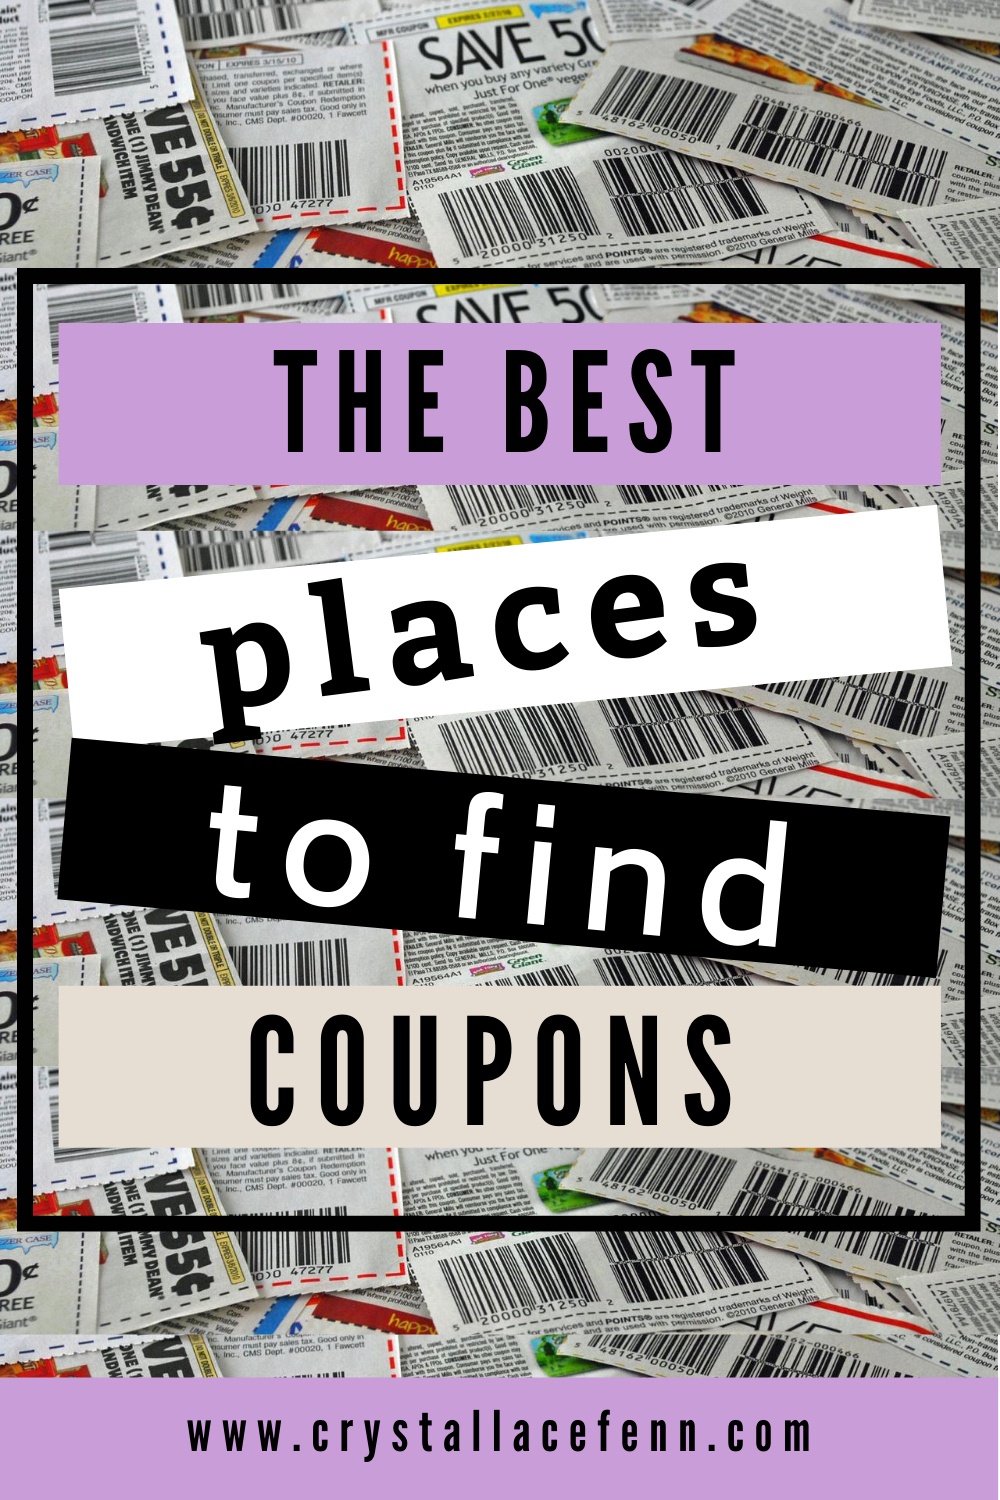 The Best Places to Find Coupons